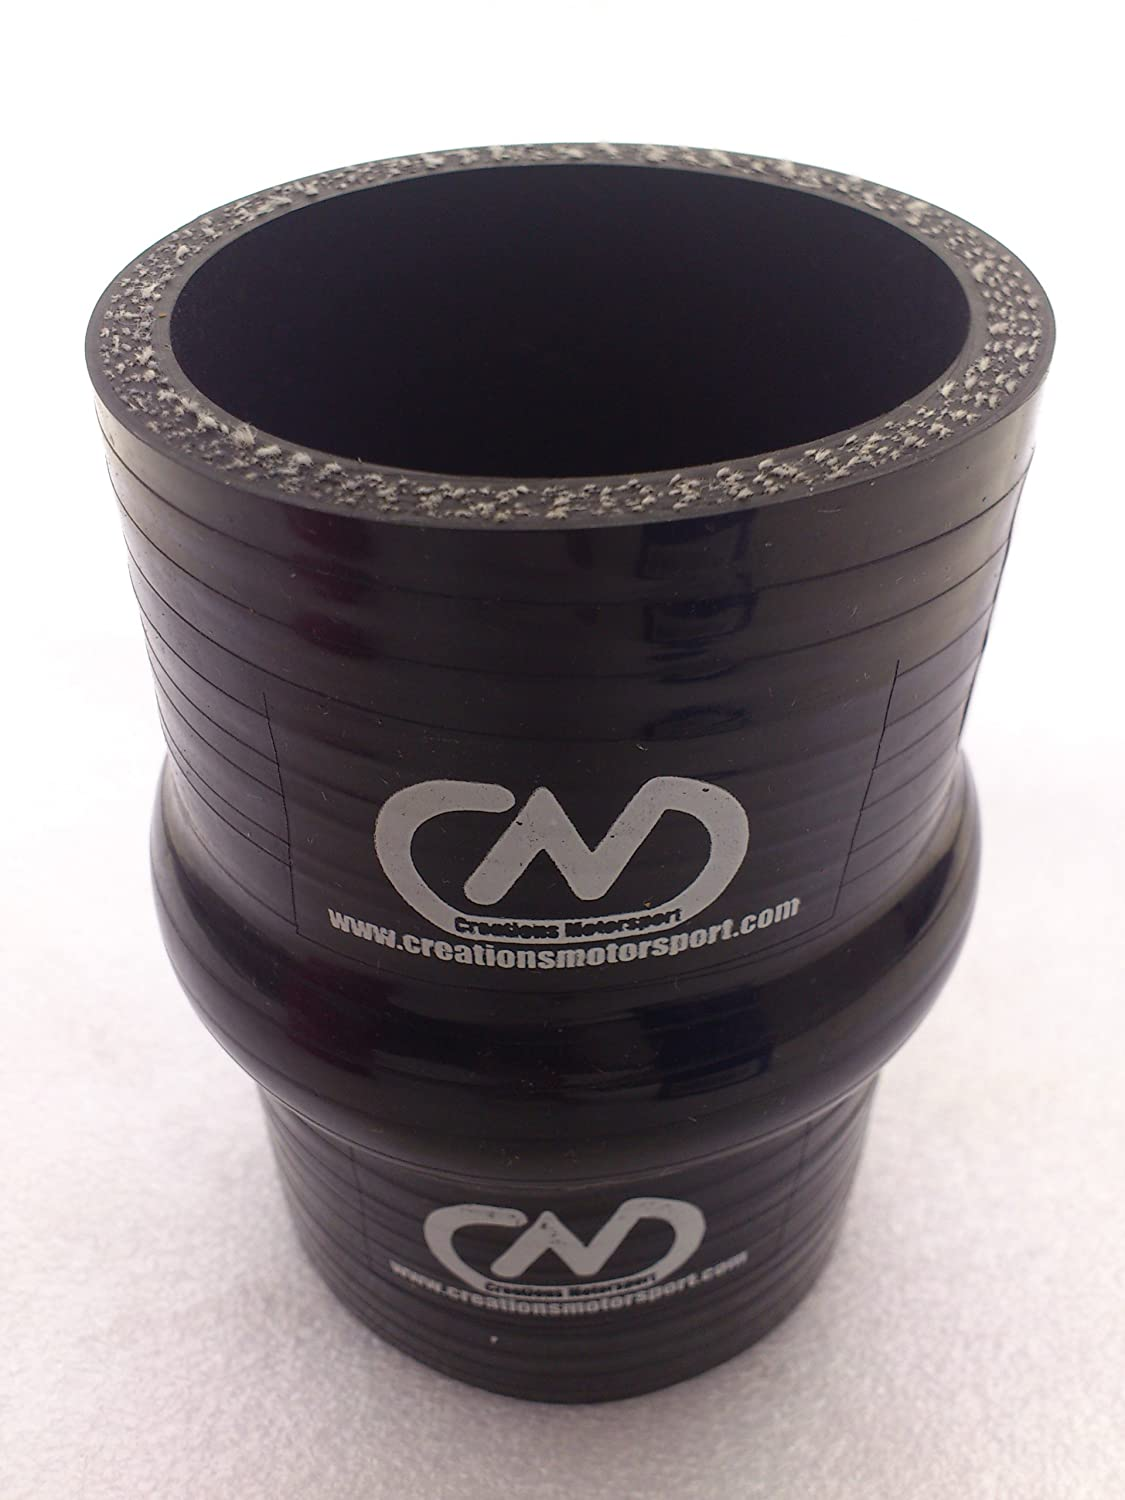 SILICONE HUMP JOINER PIPE 60mm Black creationsmotorsport